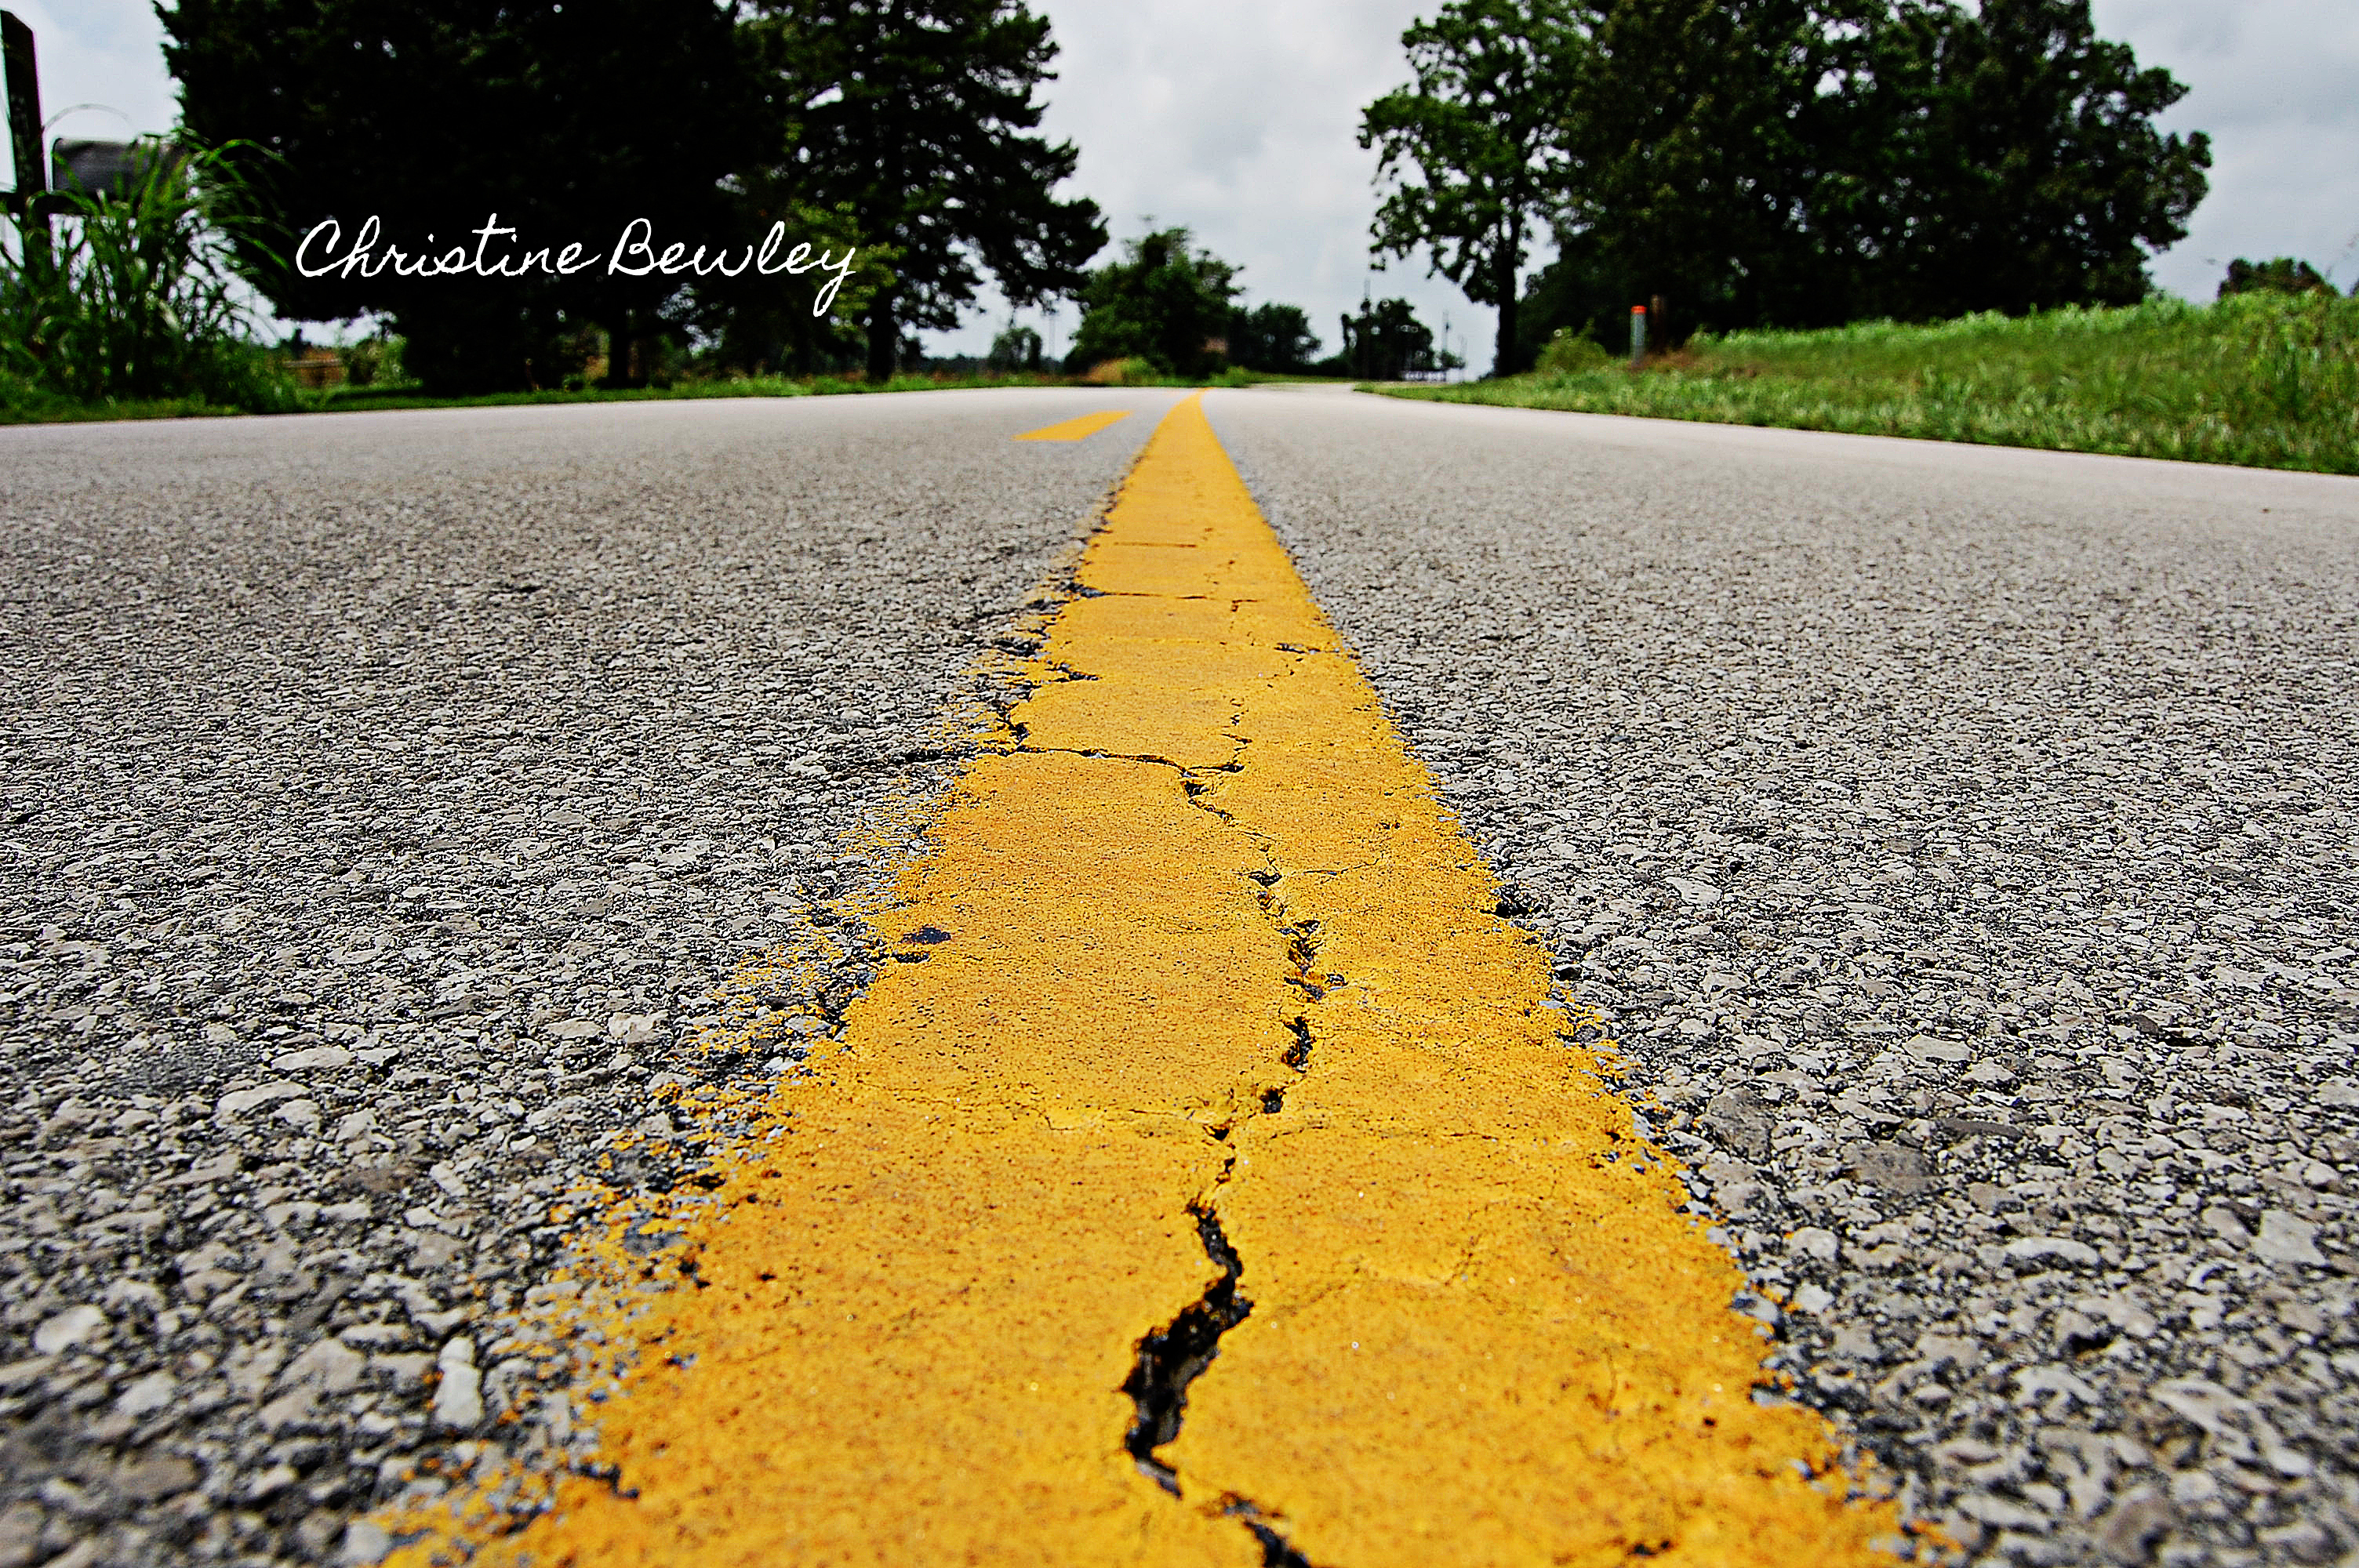 The Yellow Striped Road